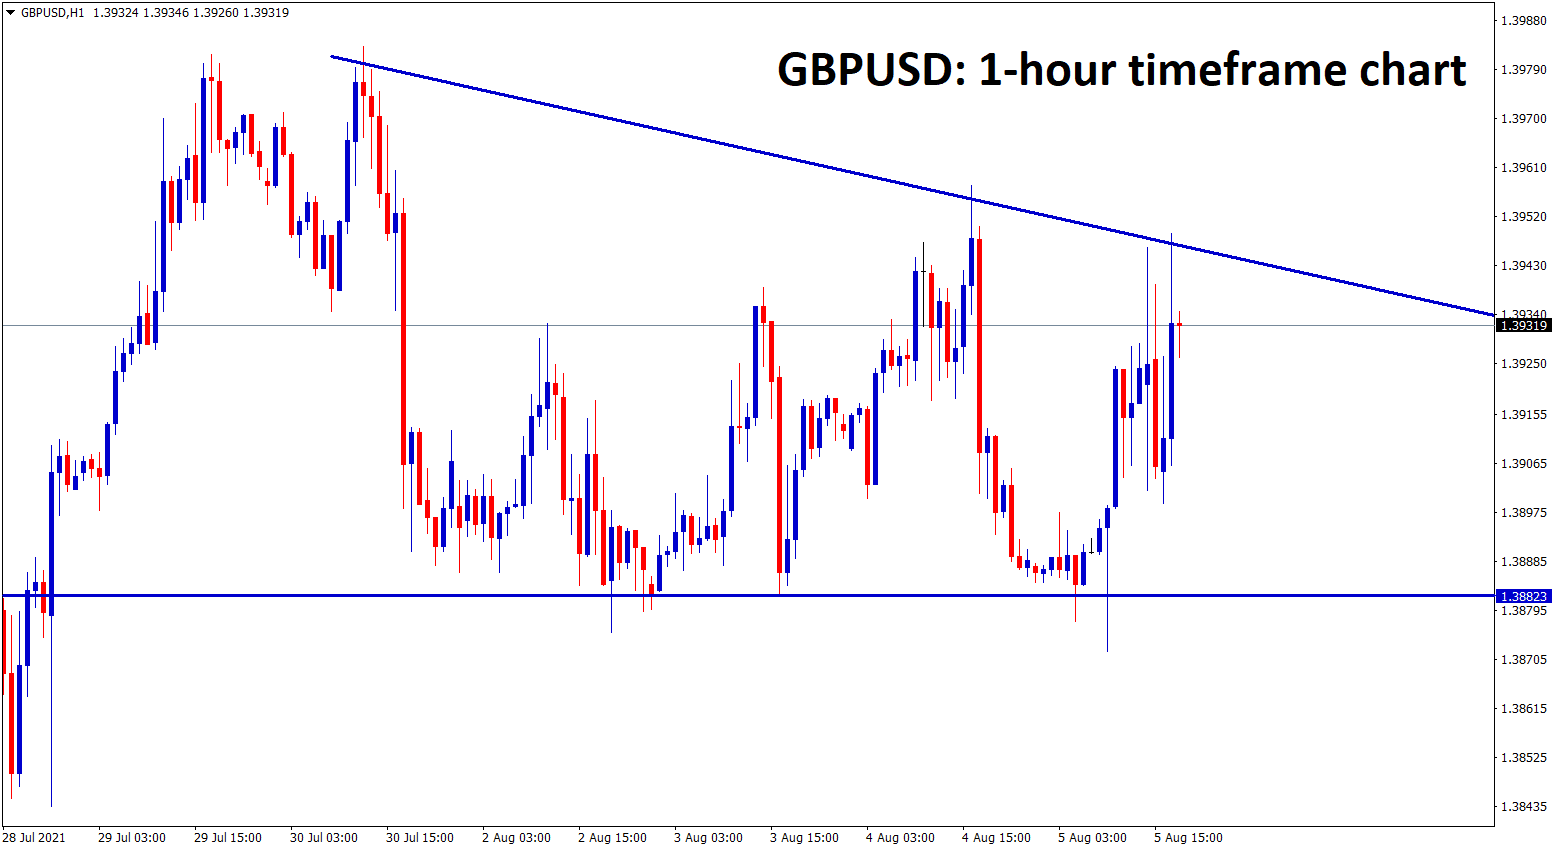 GBPUSD is moving in a descending triangle pattern